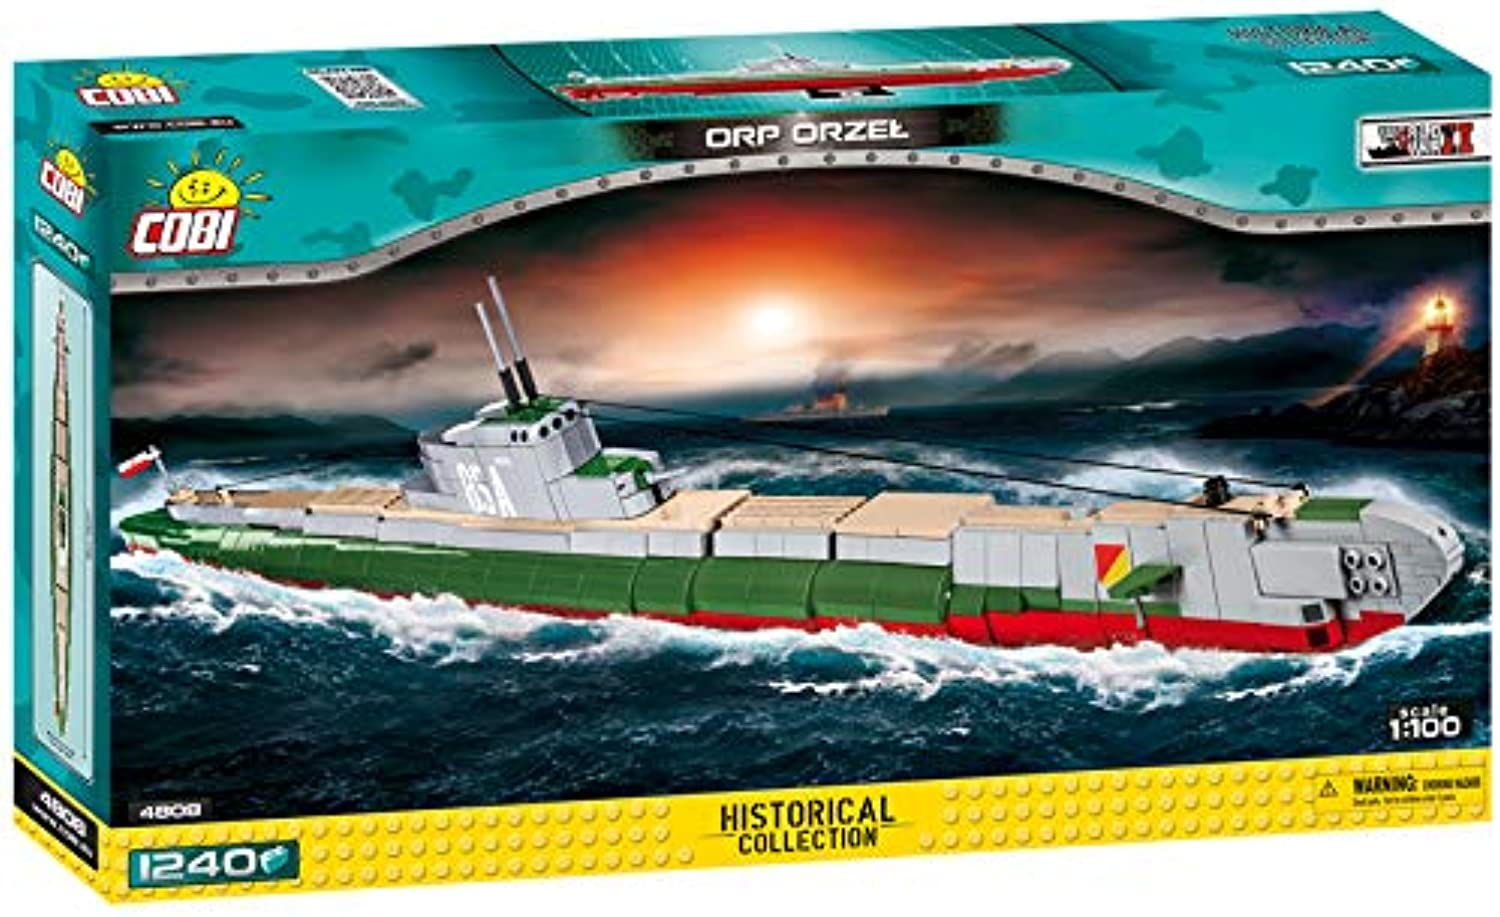 Cobi 4808 Polish Submarine ORP Orzel (Eagle) 1240 building bricks